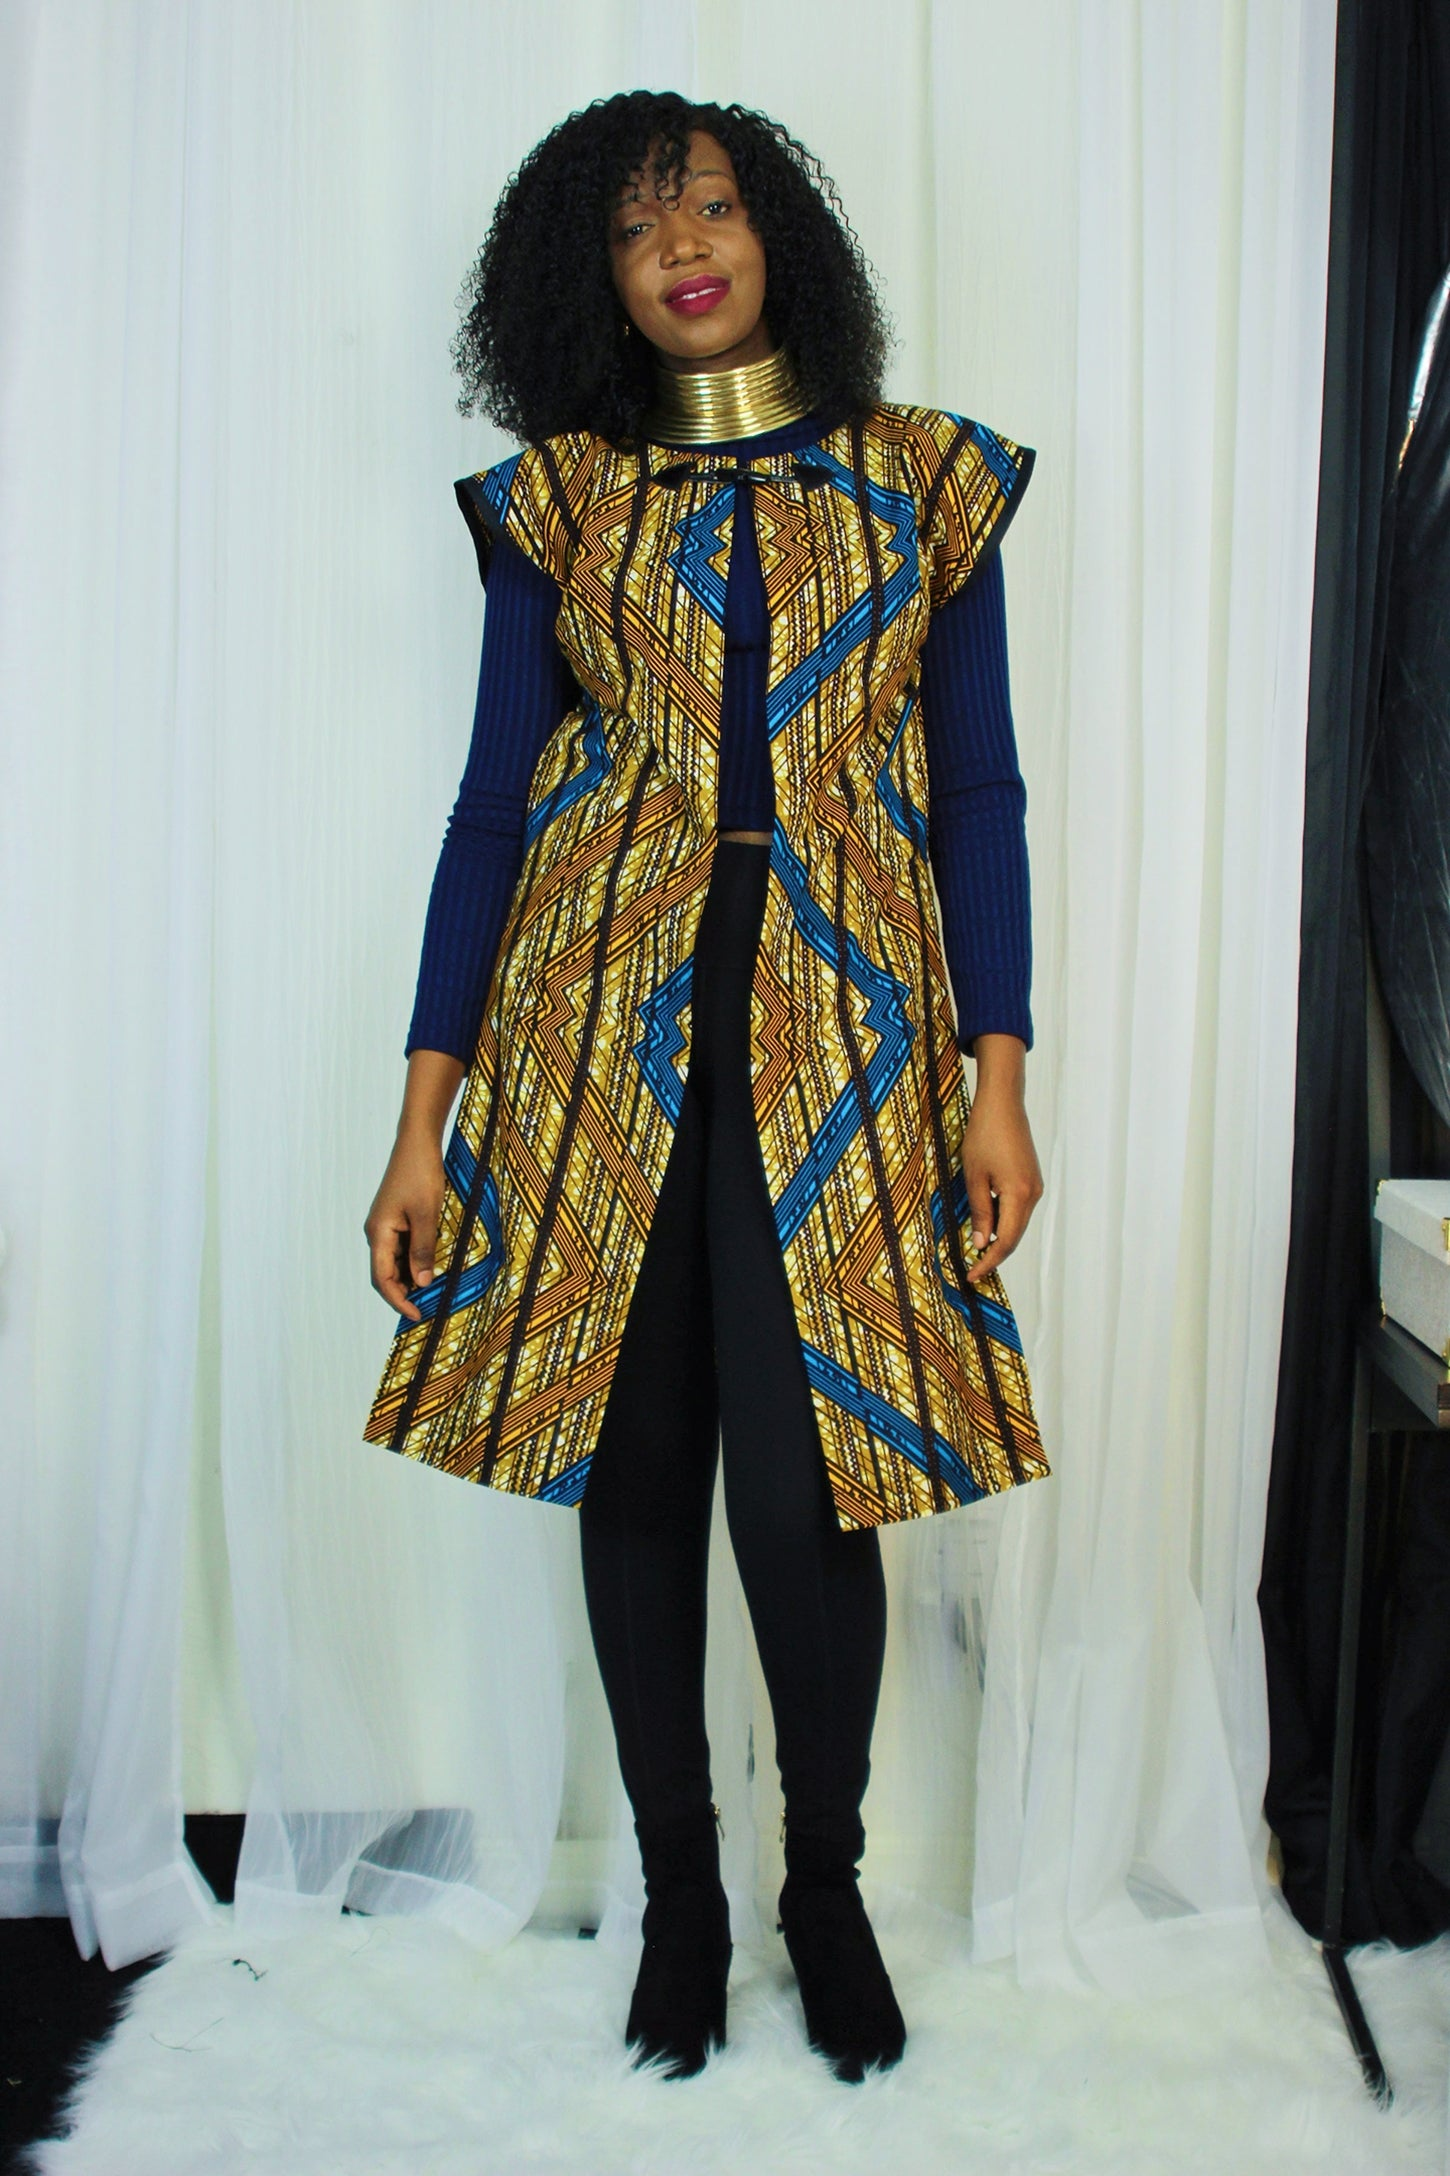 AFRICAN PRINT /ANKARA MIDI LONGLINE SHRUG - BLUE/ORANGE/BROWN TRIBAL PRINT